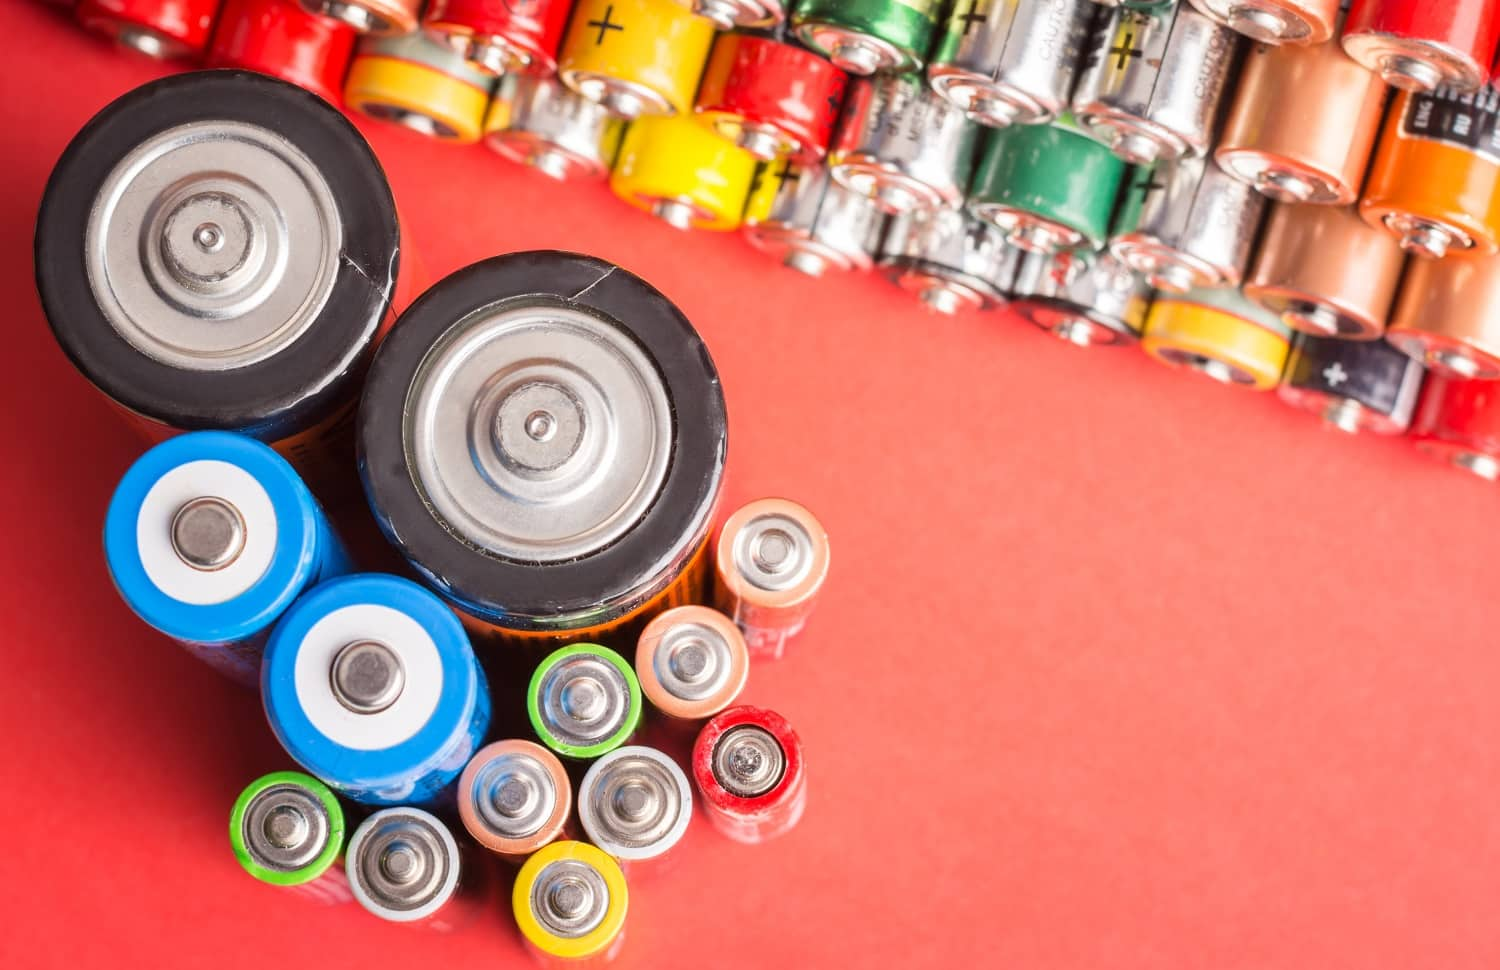 Batteries of different types and sizes on red background